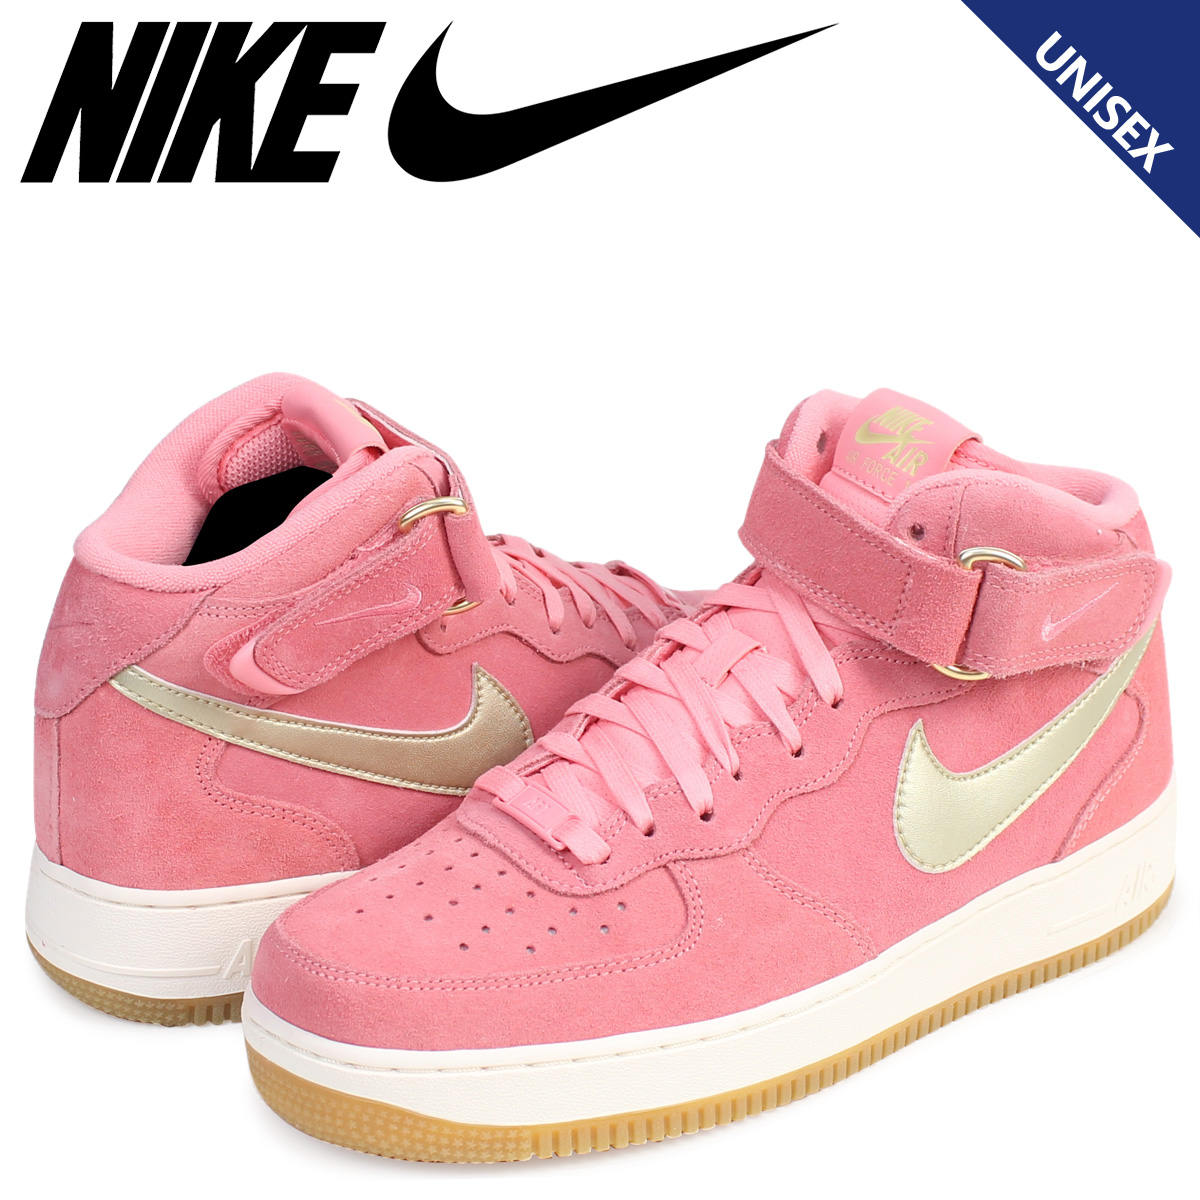 ... Mens sizes Sugar Online Shop Rakuten Global Market Nike NIKE air force 1  sneakers WMNS AIR FORCE 1 ... ff1f2ab5f